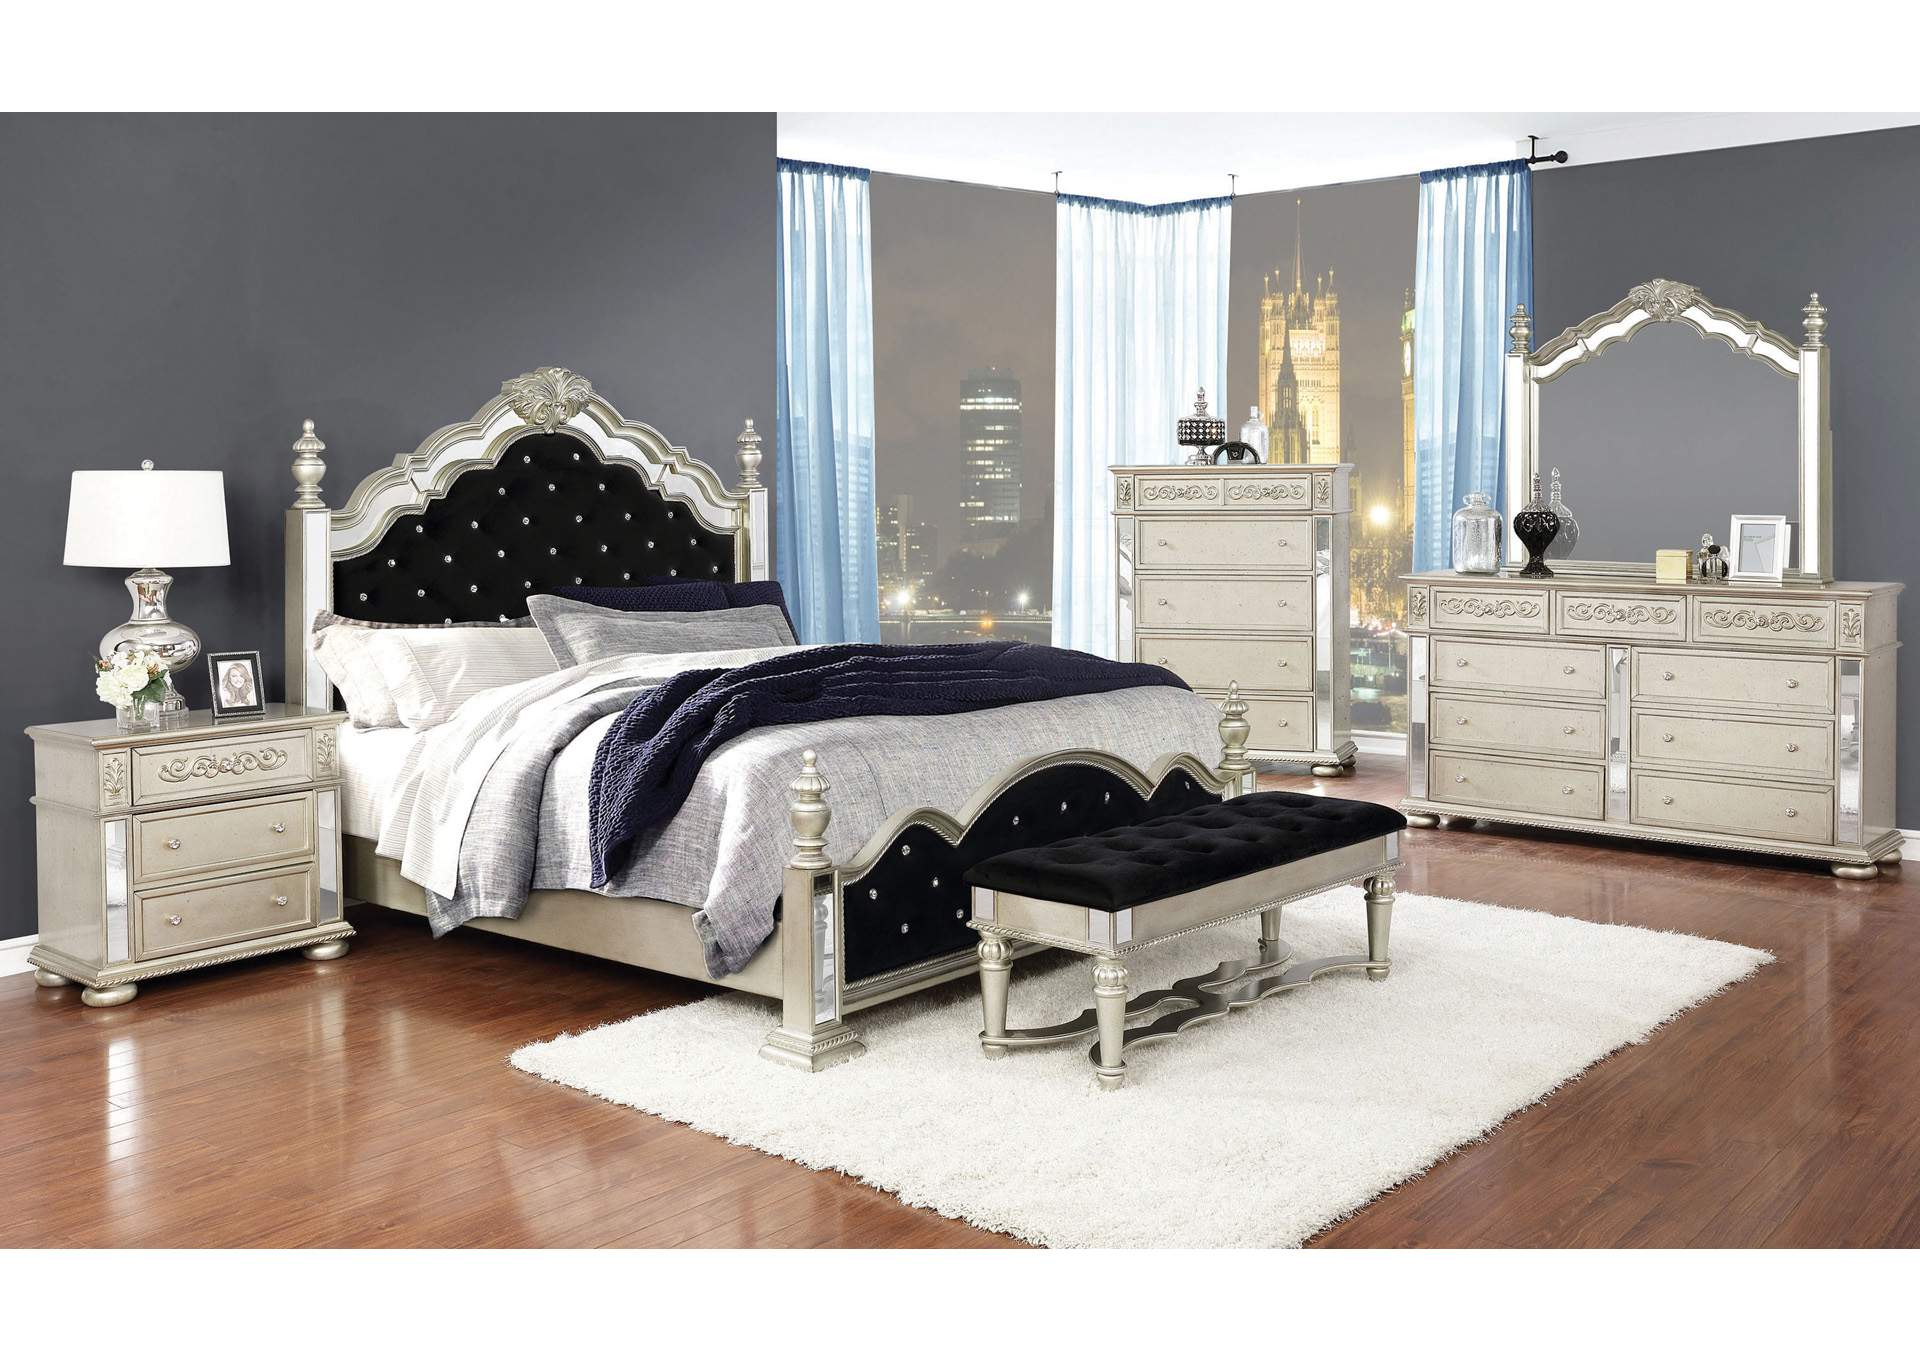 Heidi Scarpa Flow 4 Piece Eastern King Bedroom Set,Coaster Furniture